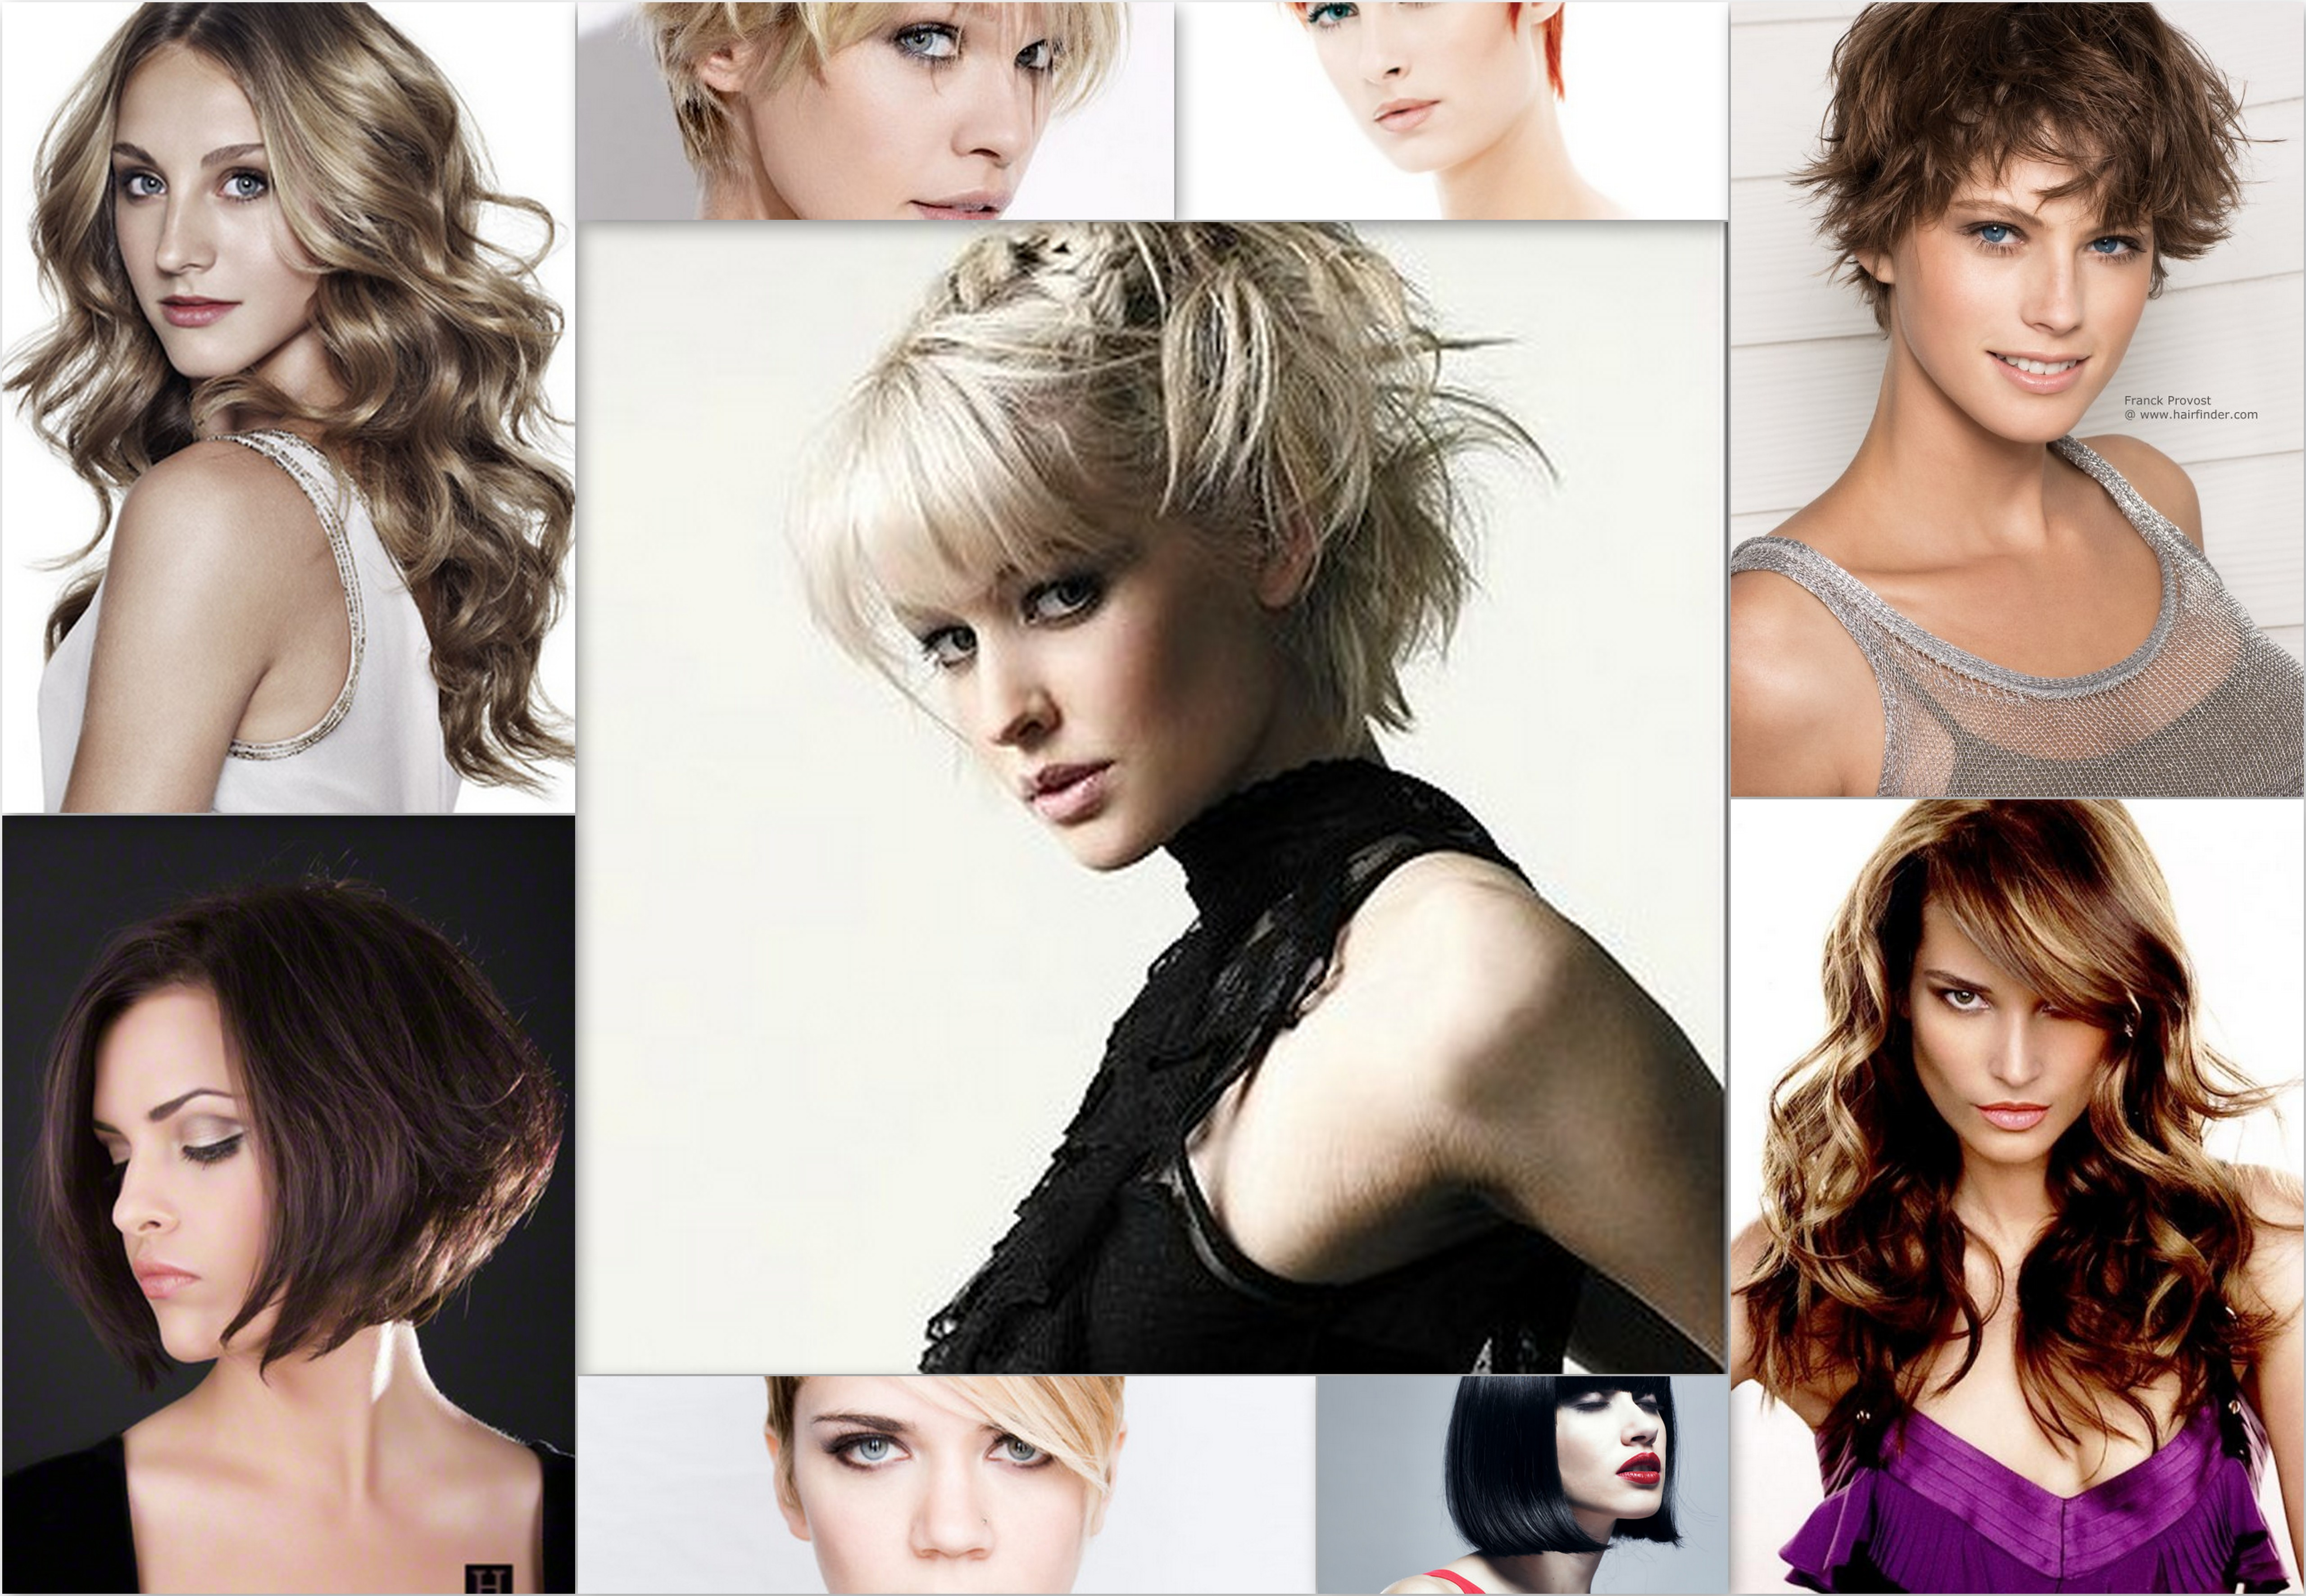 Hot and trendy haircut ideas our hair salon selected for